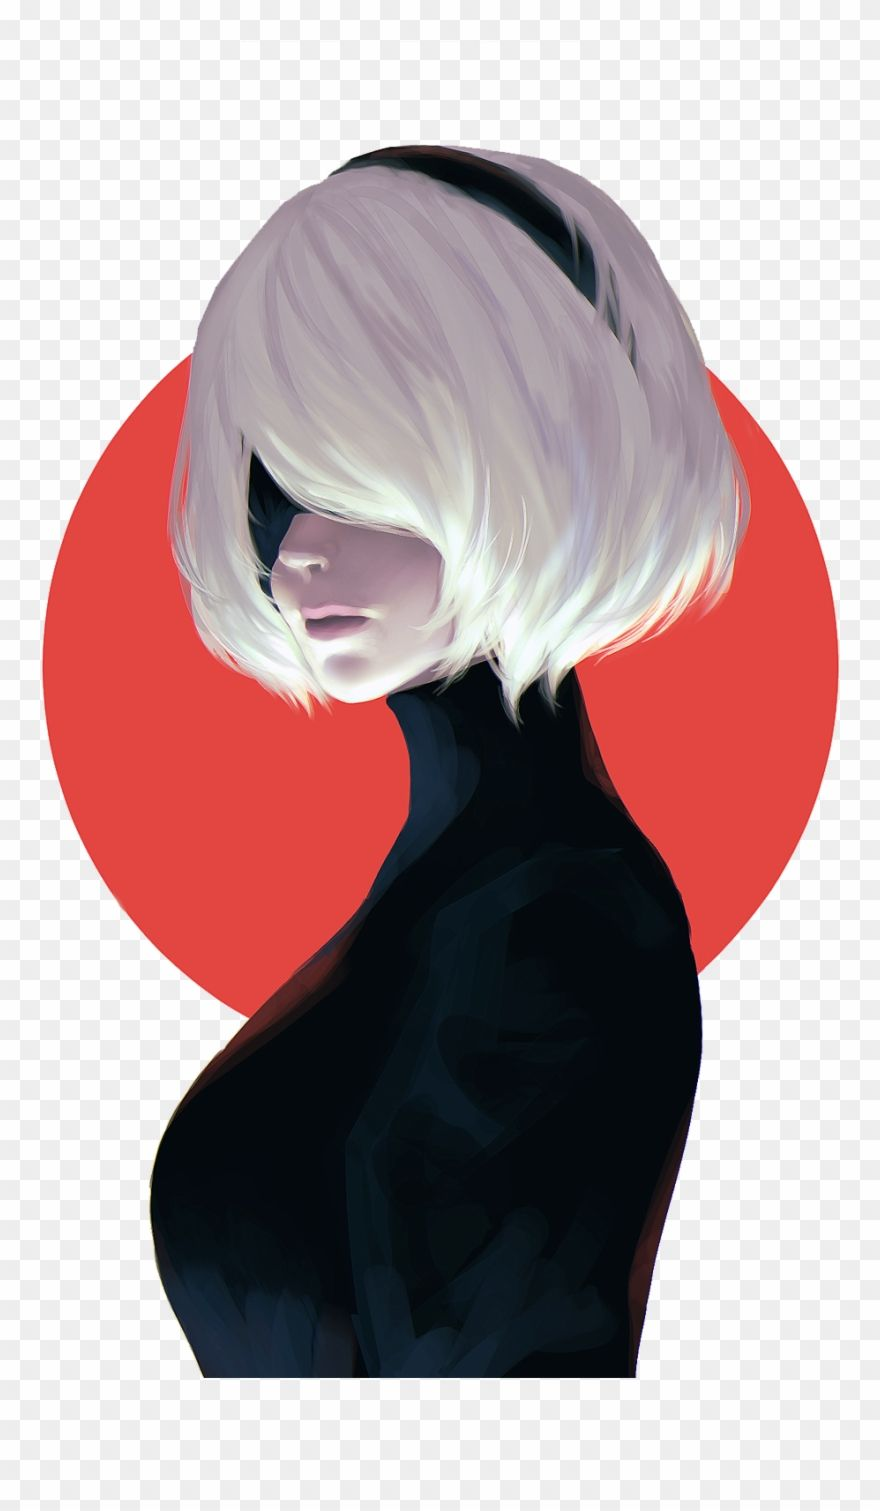 Download Hd Nier Automata 2b Art Png Download Clipart And Use The Free Clipart For Your Creative Project Clip Art Nier Automata Book Art